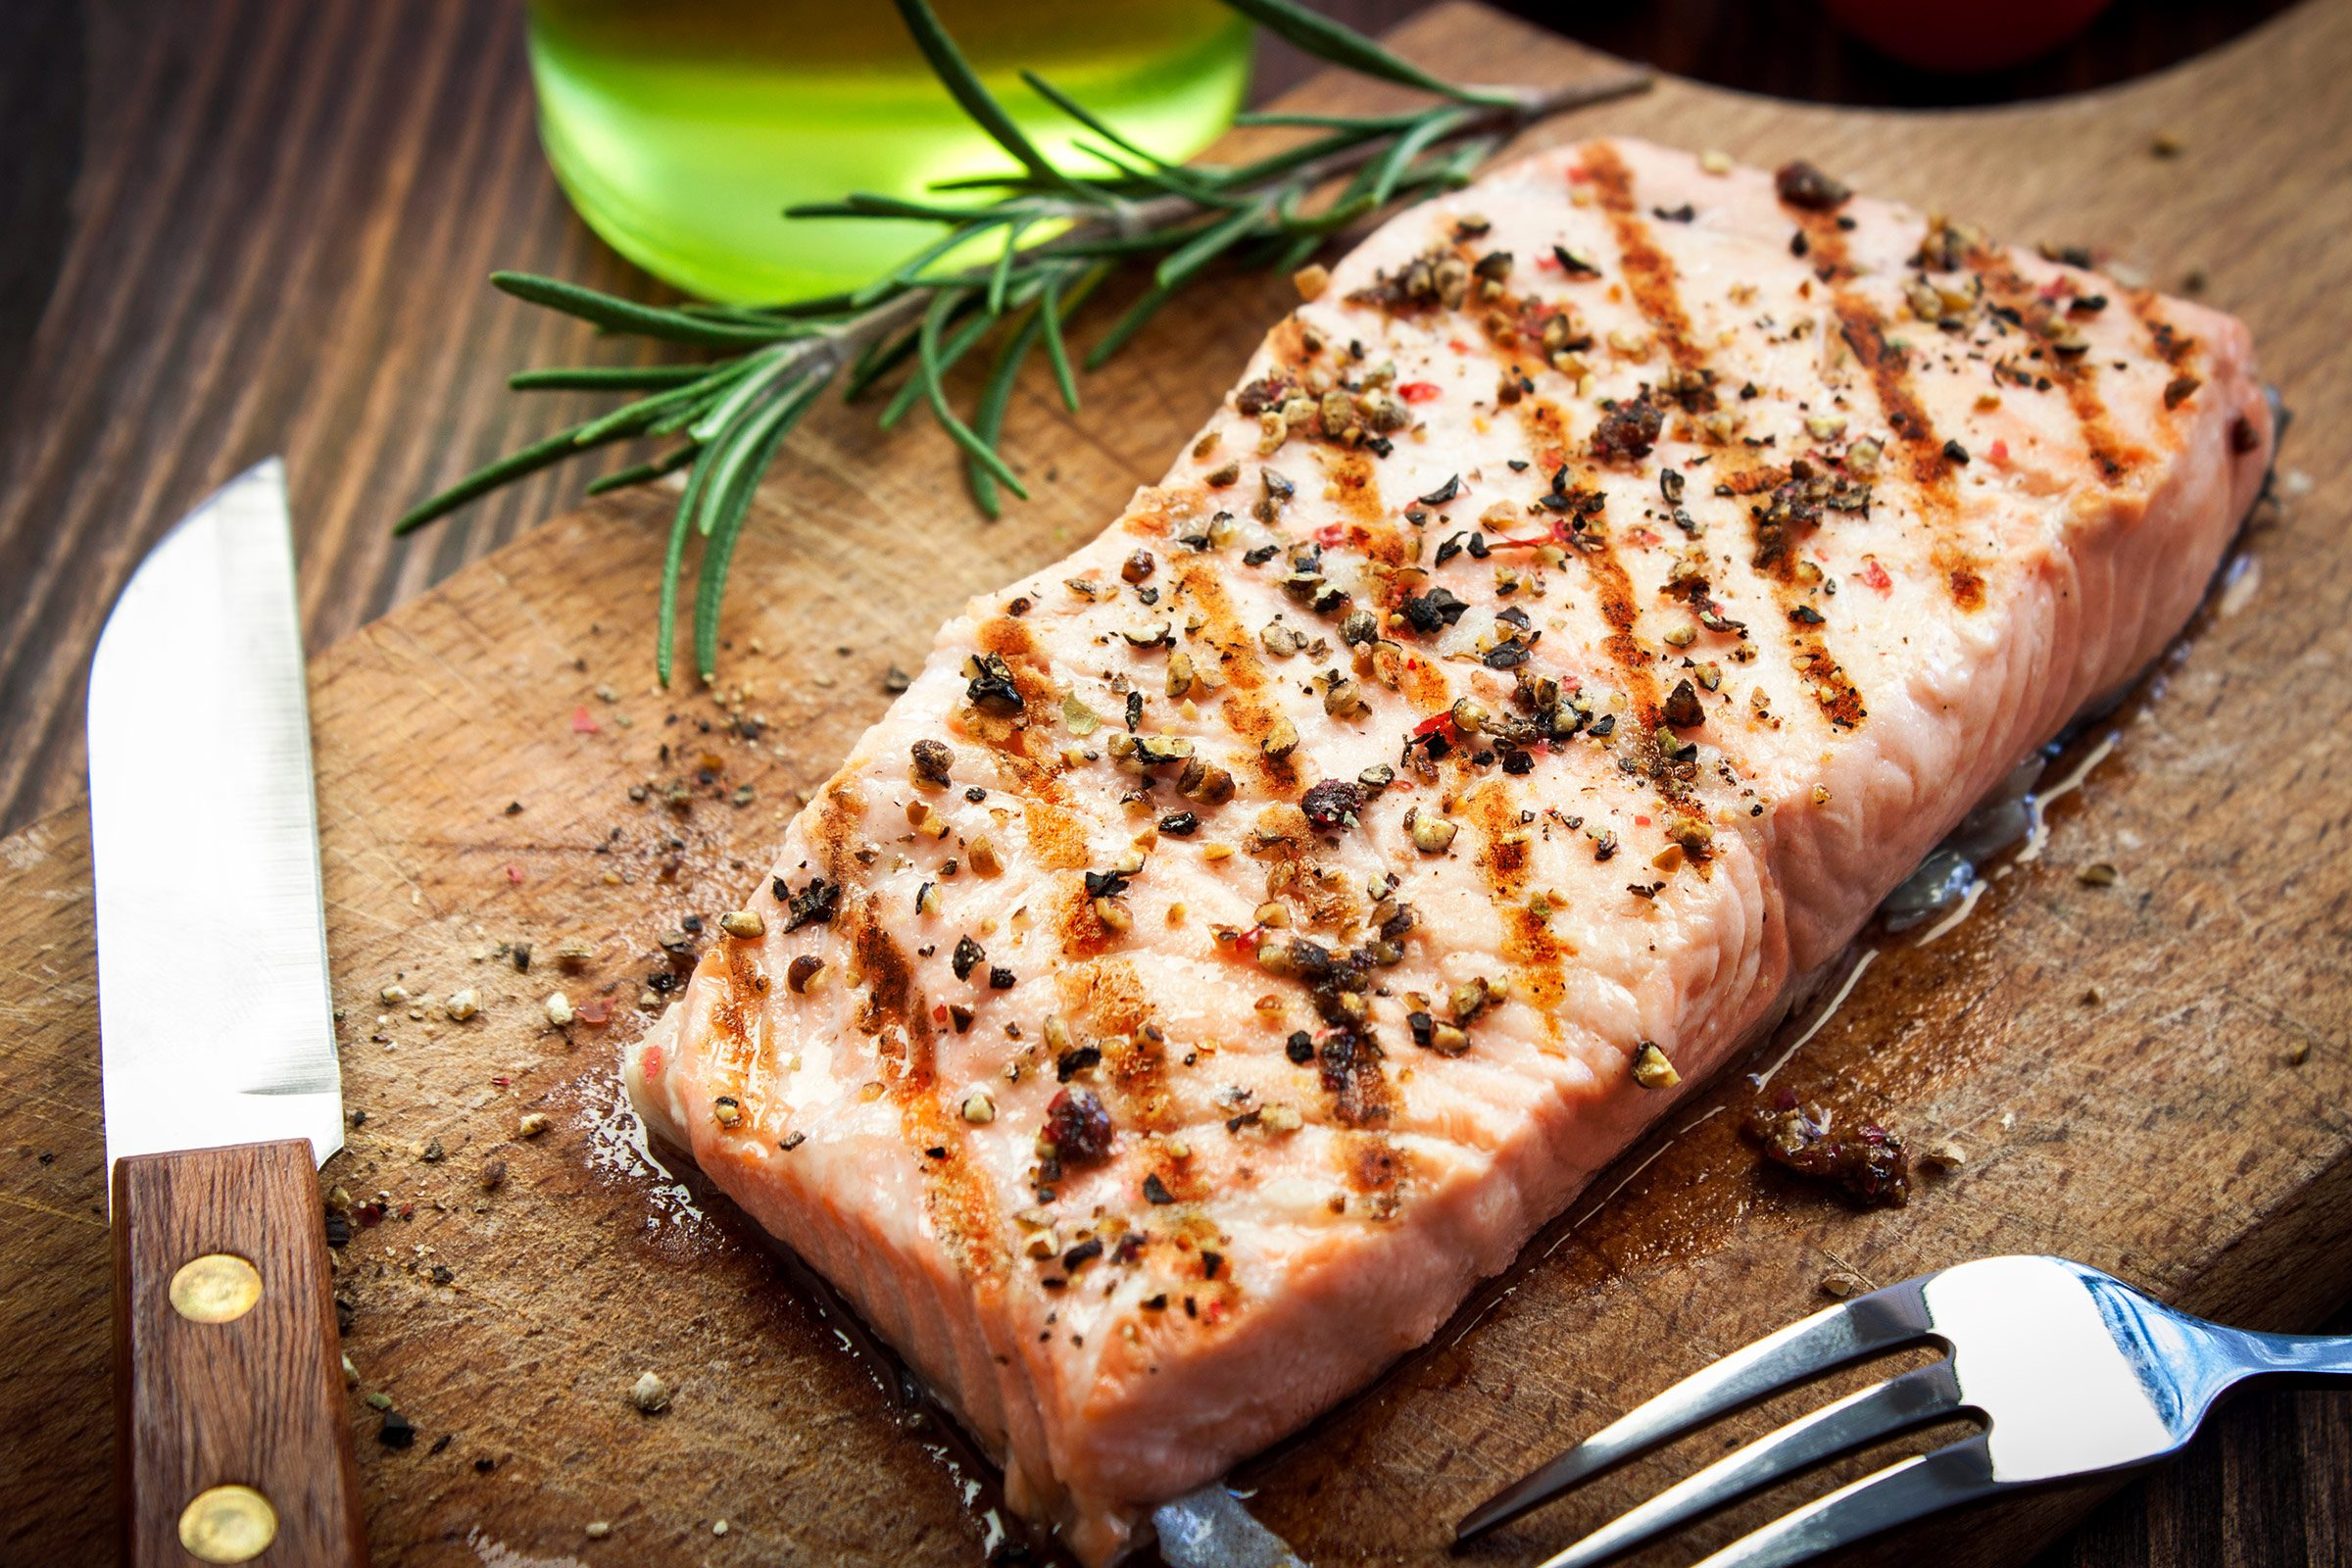 Fish filets and steaks